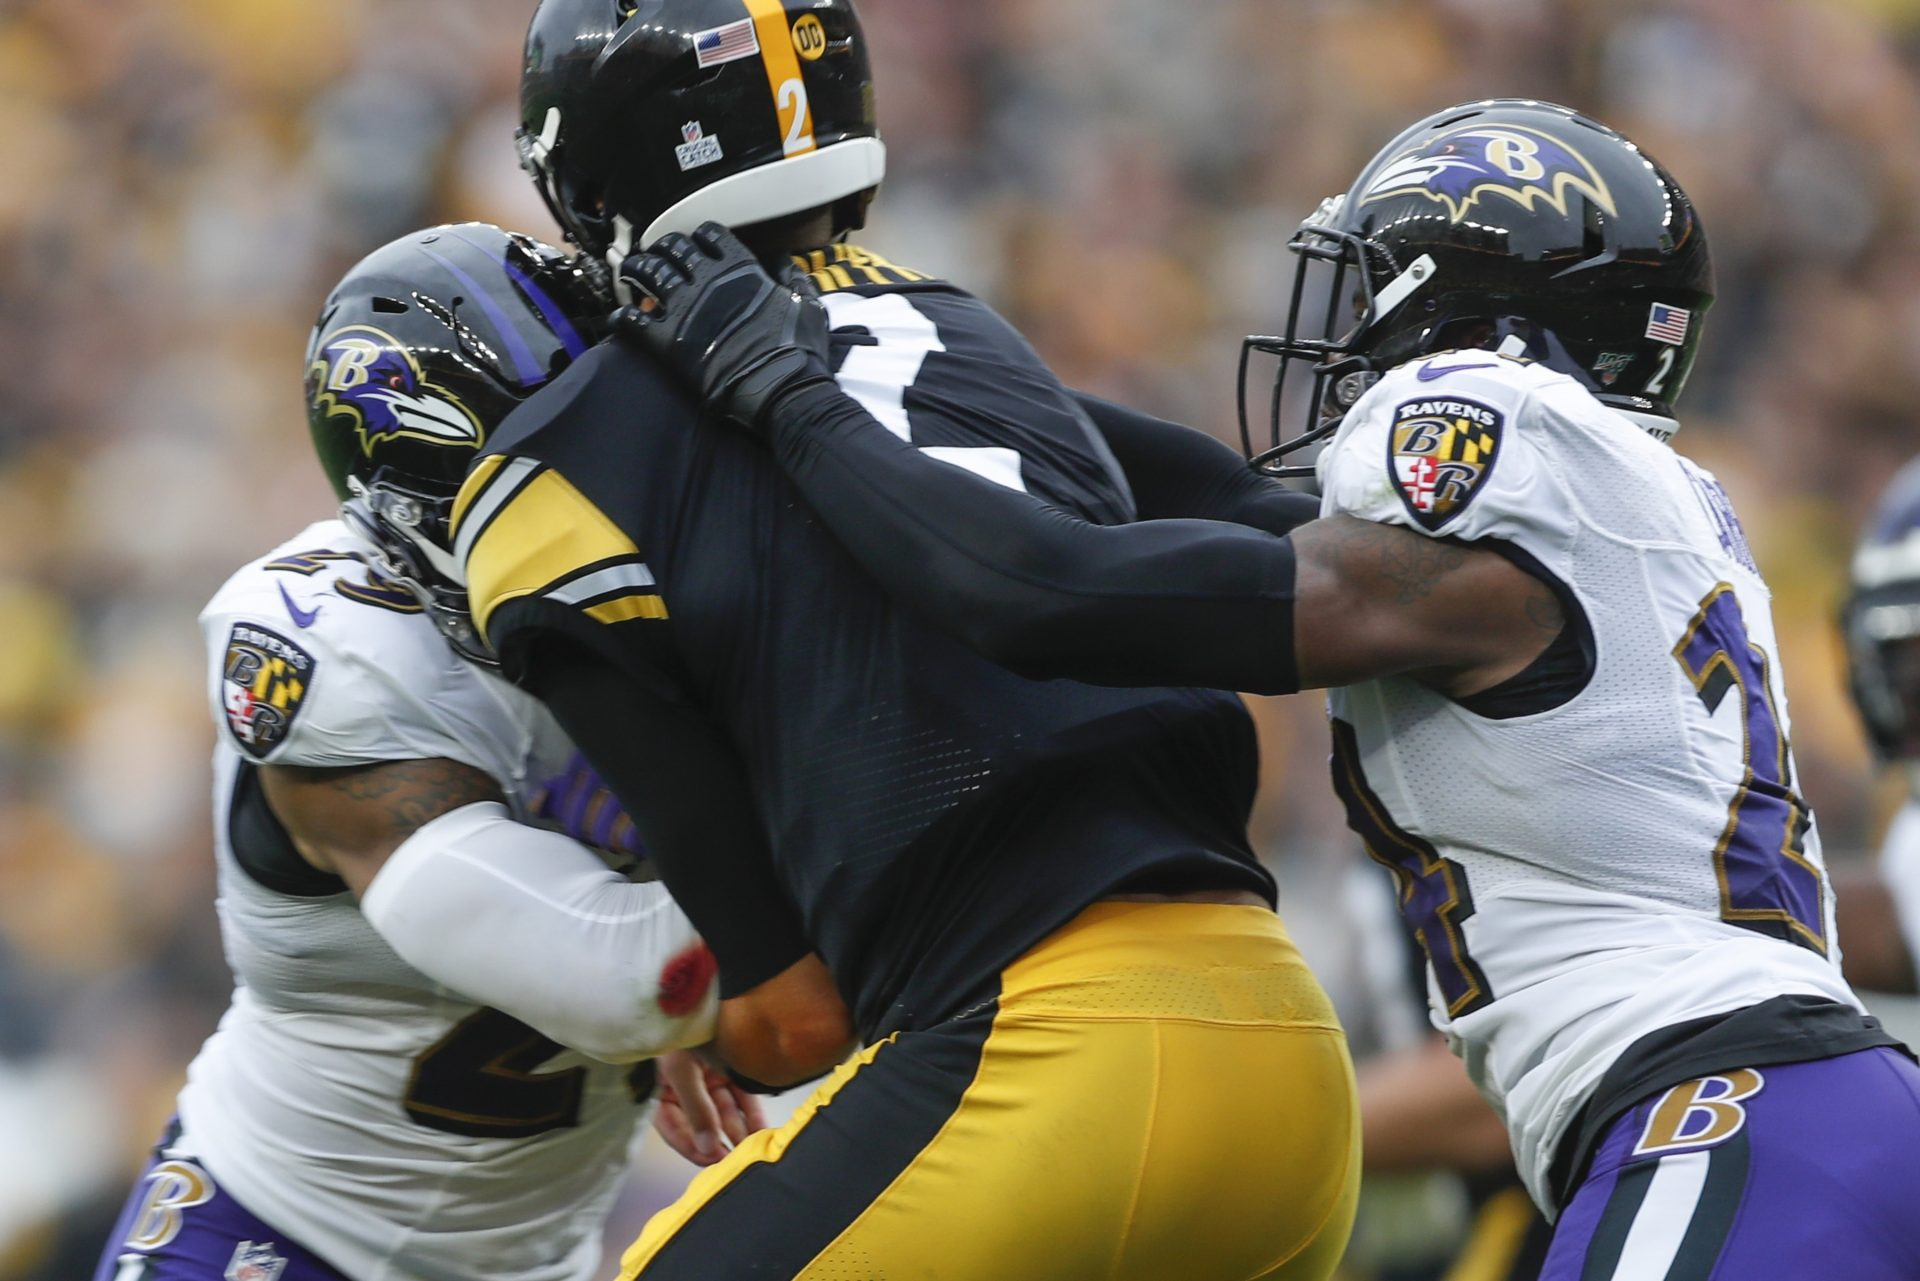 Pittsburgh Steelers quarterback Mason Rudolph (2) is hit by Baltimore Ravens free safety Earl Thomas (29), left, and cornerback Brandon Carr (24) during the second half of an NFL football game, Sunday, Oct. 6, 2019, in Pittsburgh.